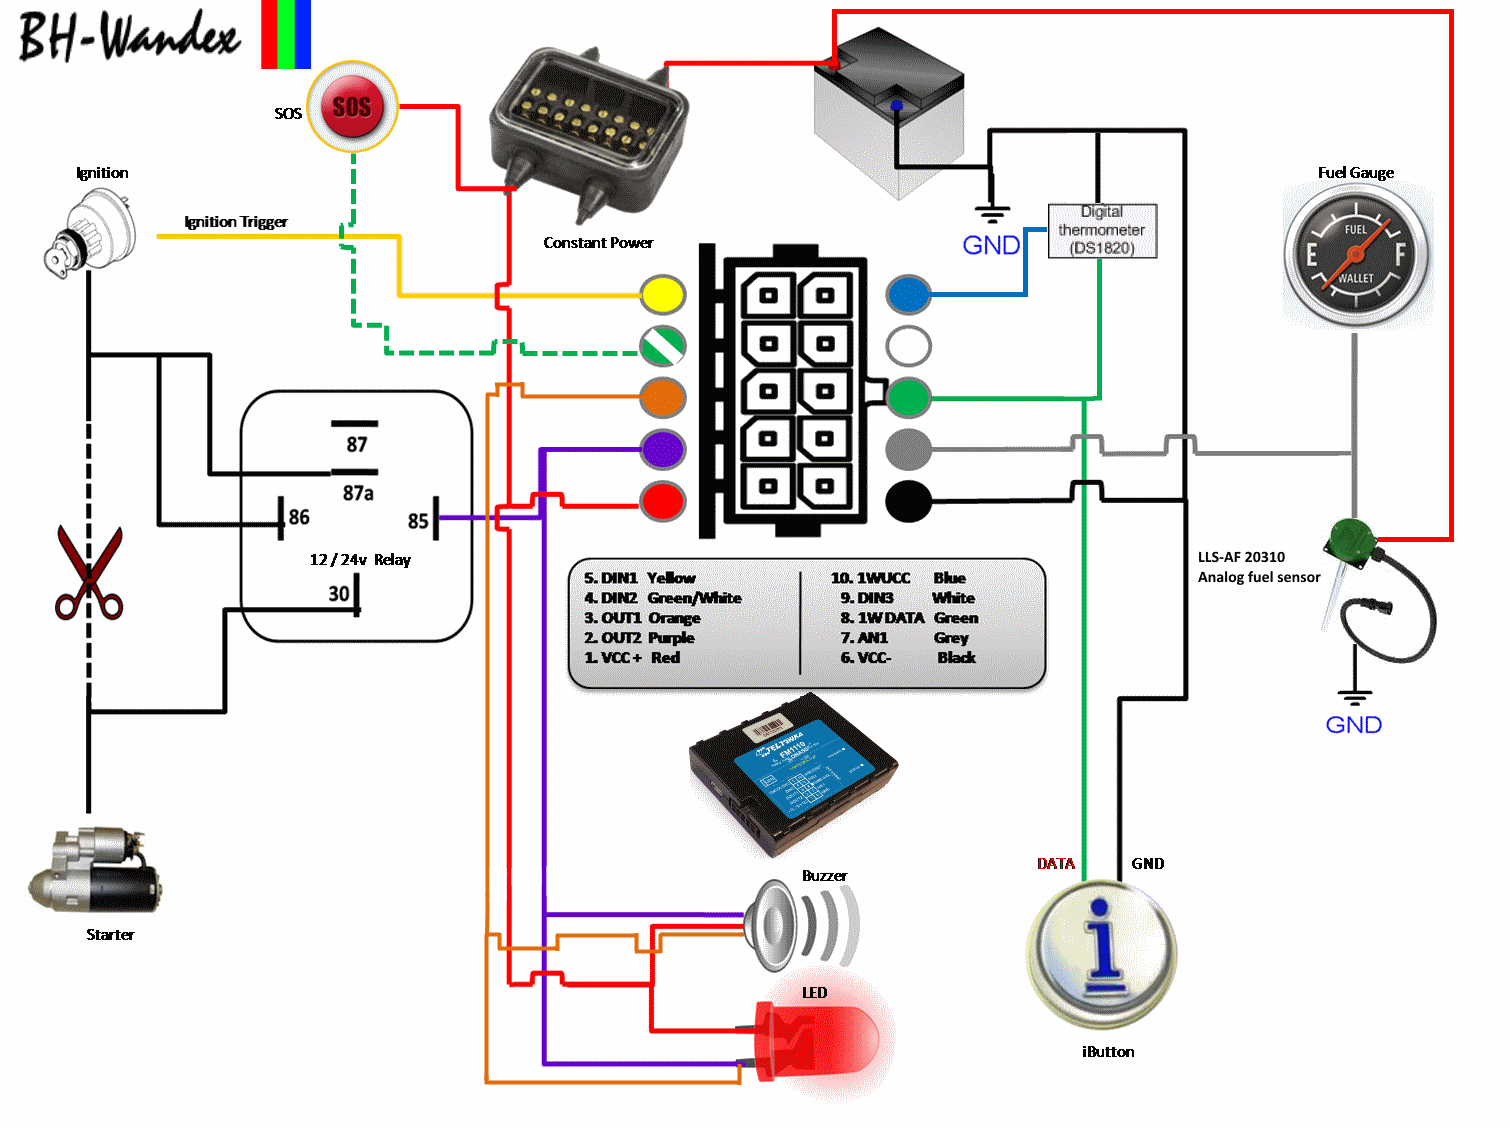 ca%C5%82o%C5%9B%C4%87 lokalizator samochodowy Basic Electrical Wiring Diagrams at panicattacktreatment.co